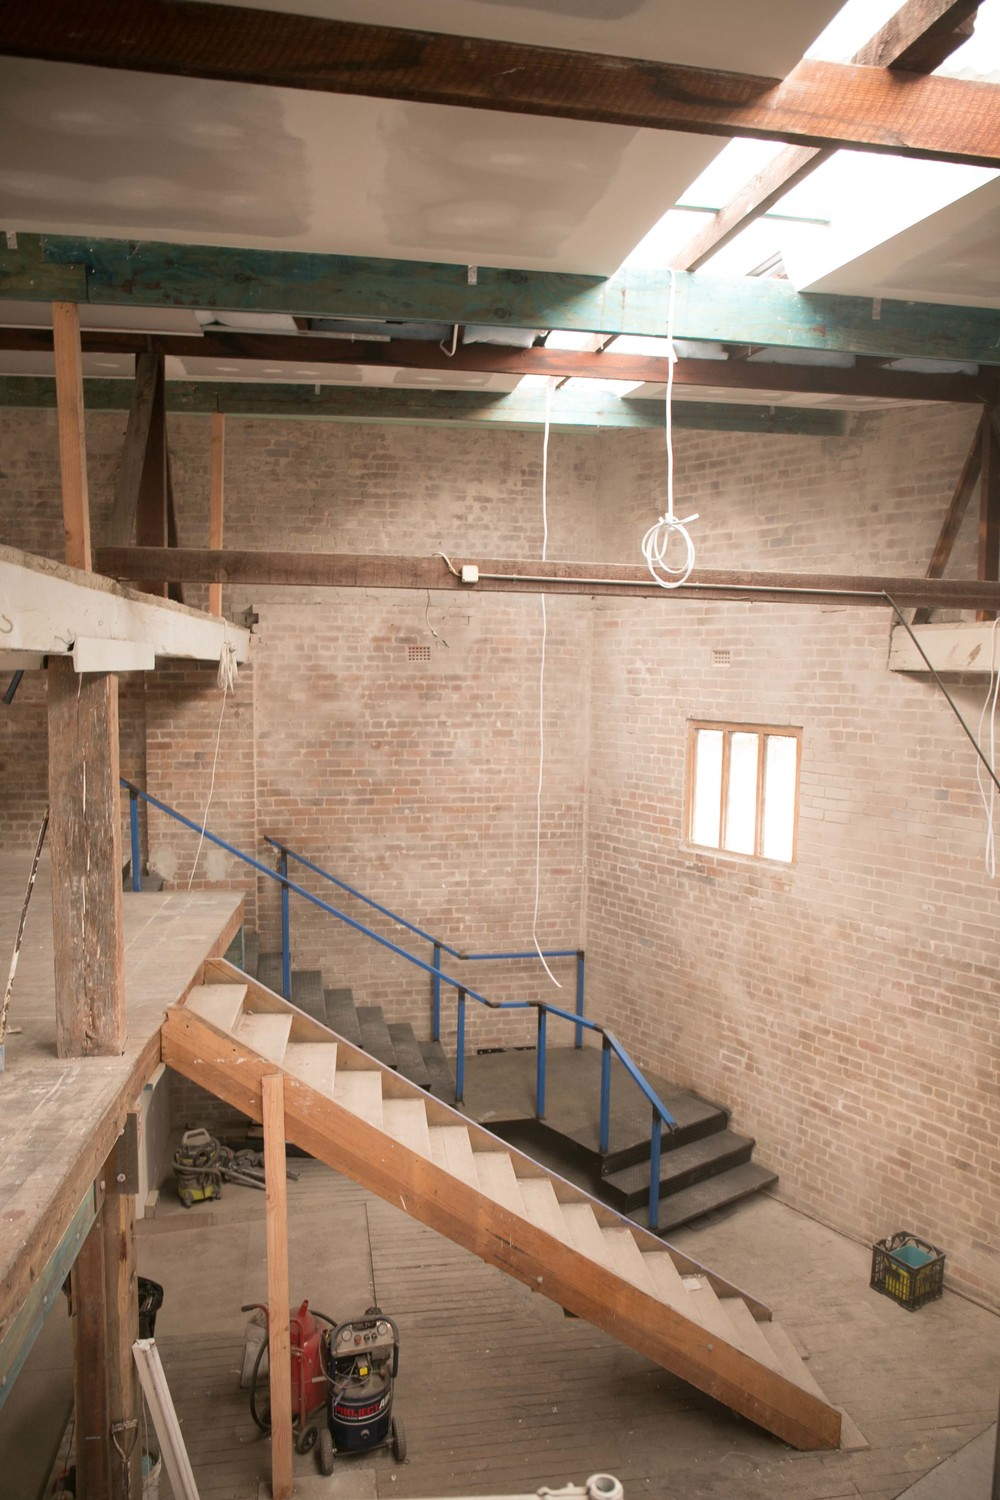 The old stair moved temporarily to make way for the new steel stair and balustrade to be installed.